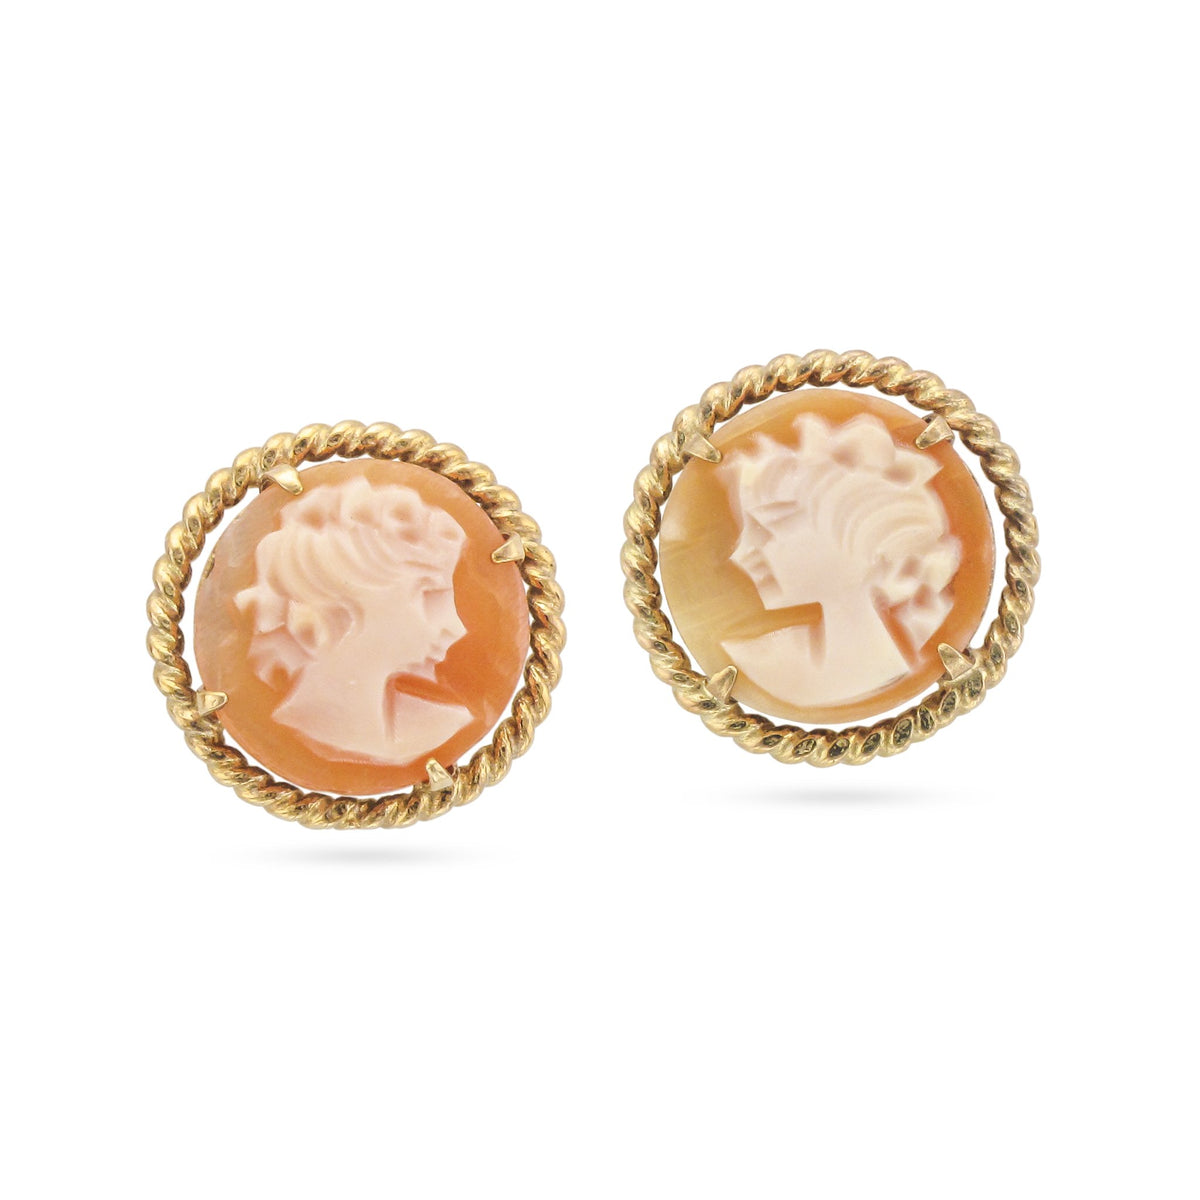 Vintage 9ct Yellow Gold Cameo Stud Earrings